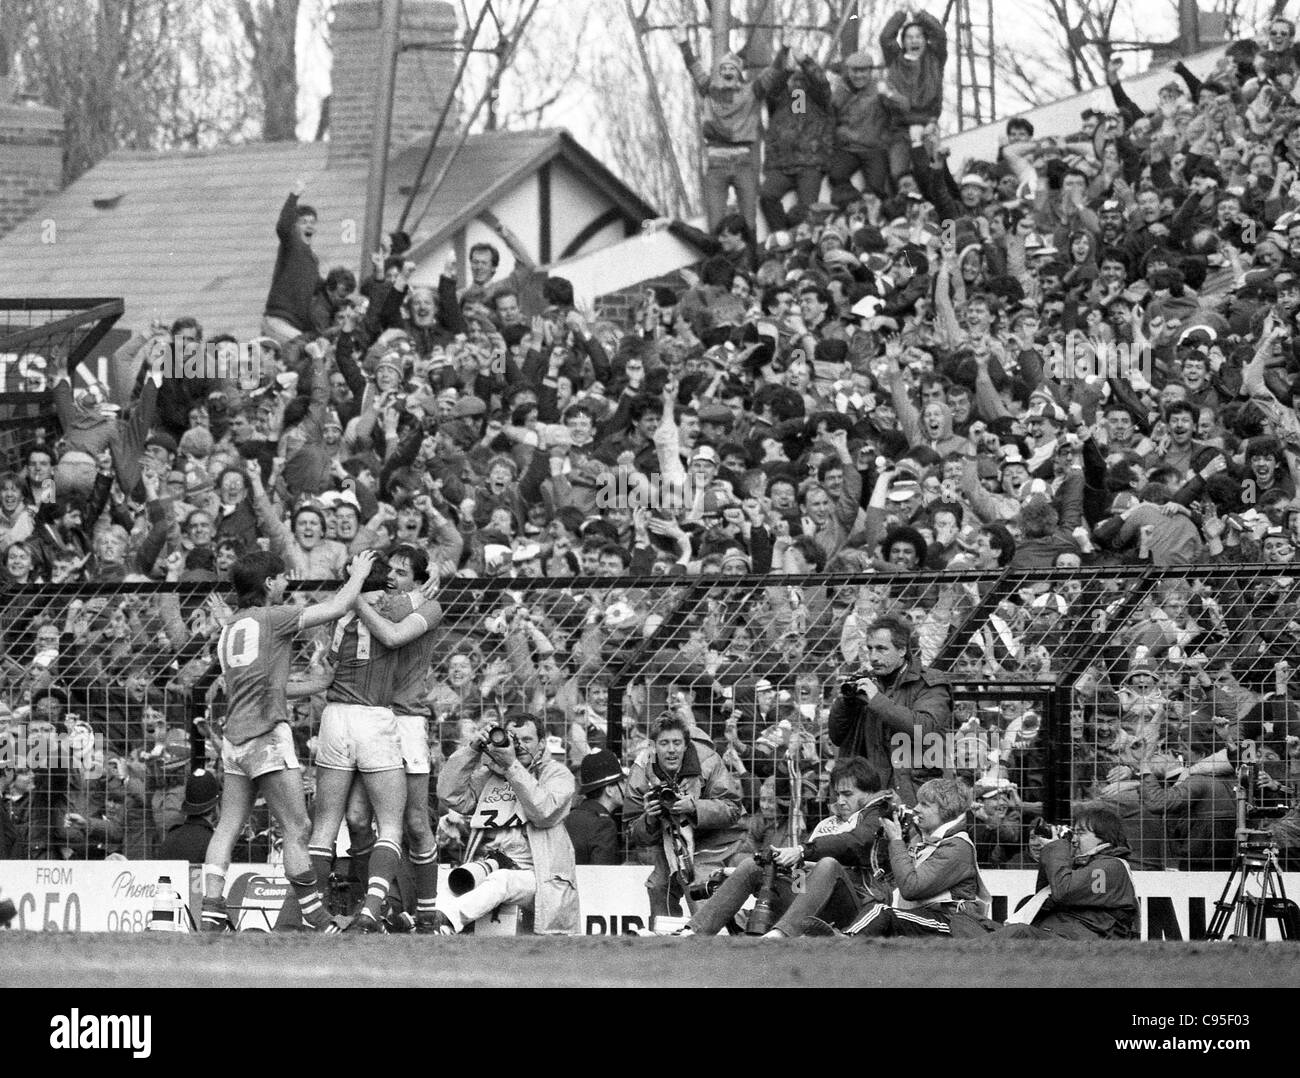 Everton V Luton Town Fa Cup Semi Final At Villa Park 13 4 85 Everton Stock Photo Alamy